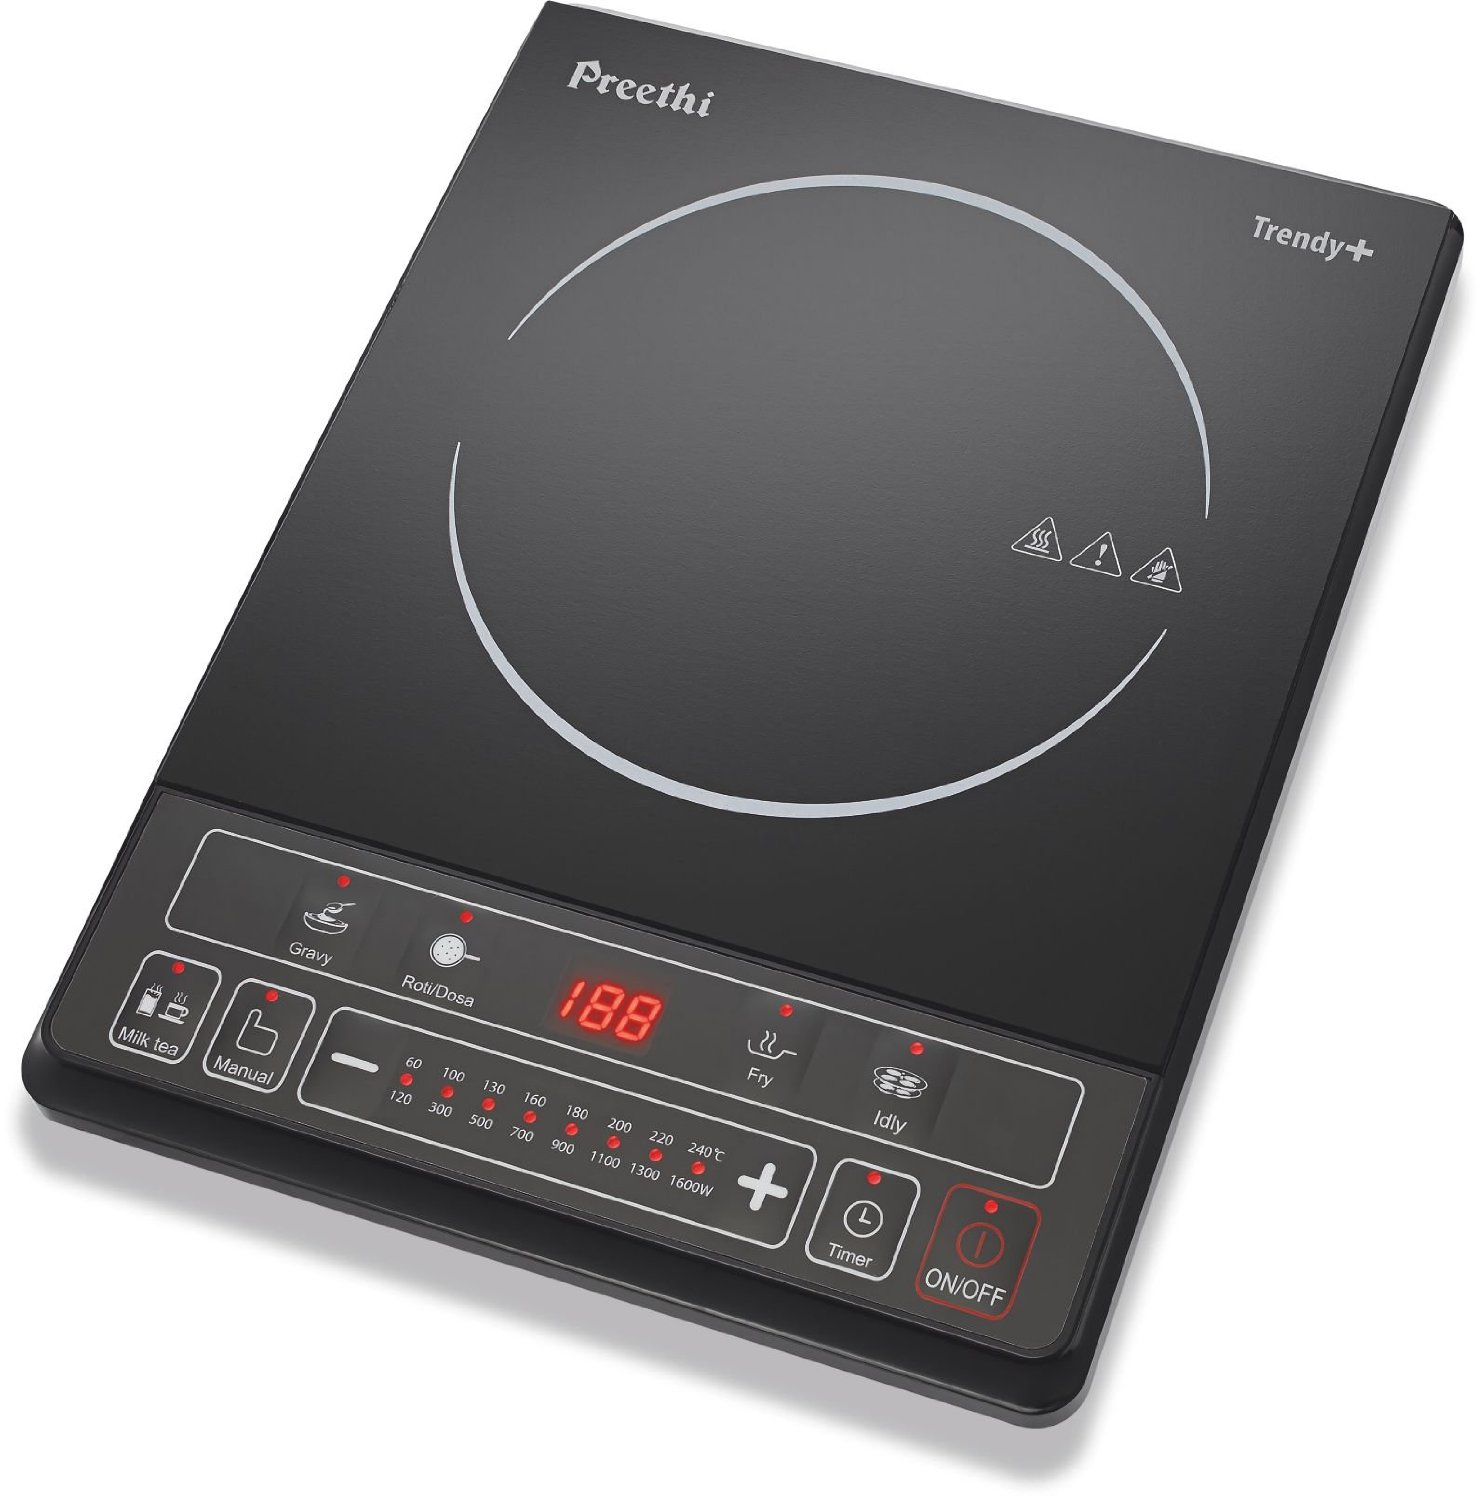 Induction Cooktops Reviews Preethi Trendy Plus 116 1600 Watt Induction Cooktop